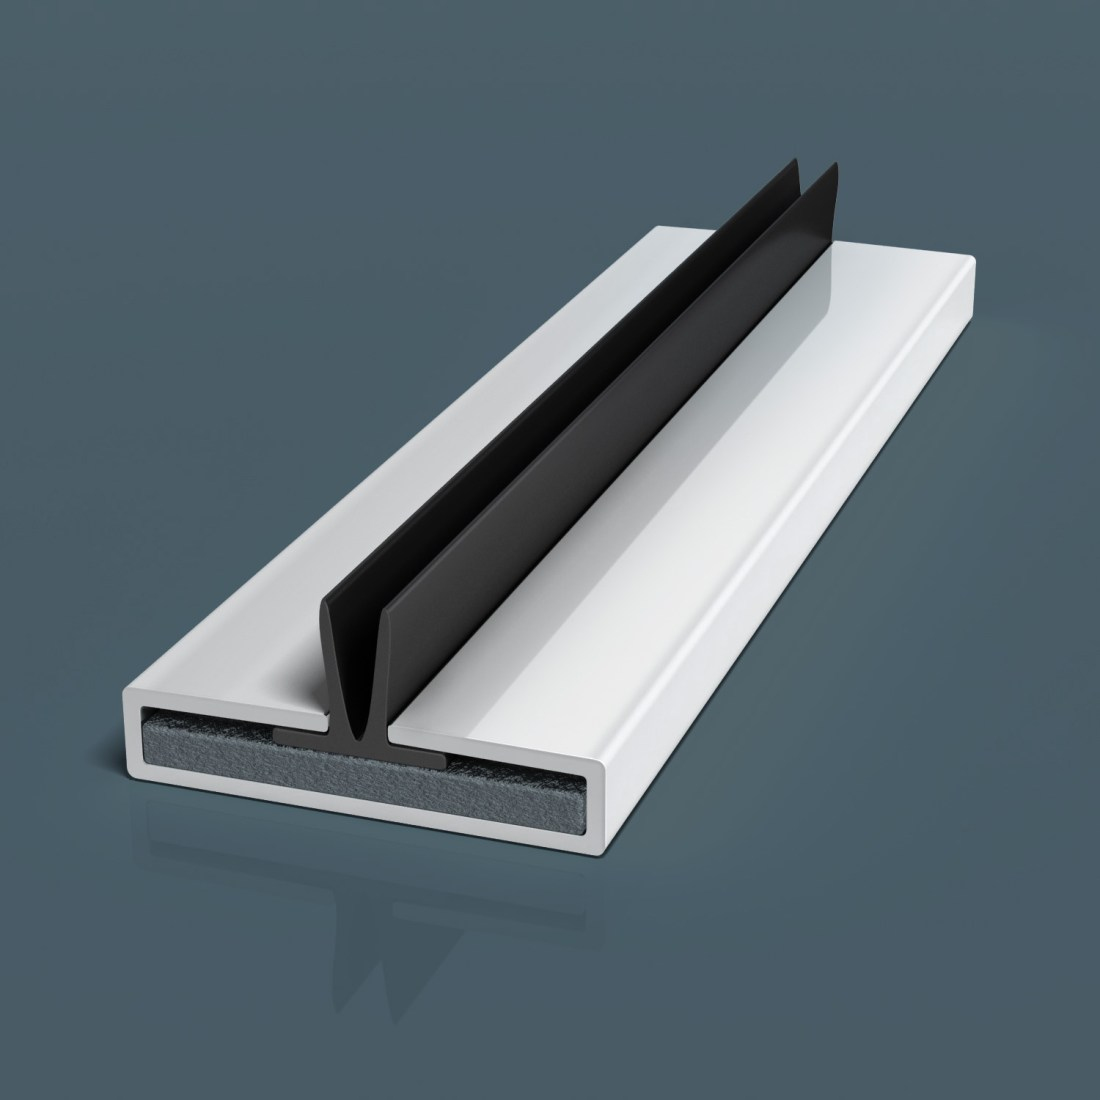 Flexifin Pyrostrip 500 Twin Blade Illustration